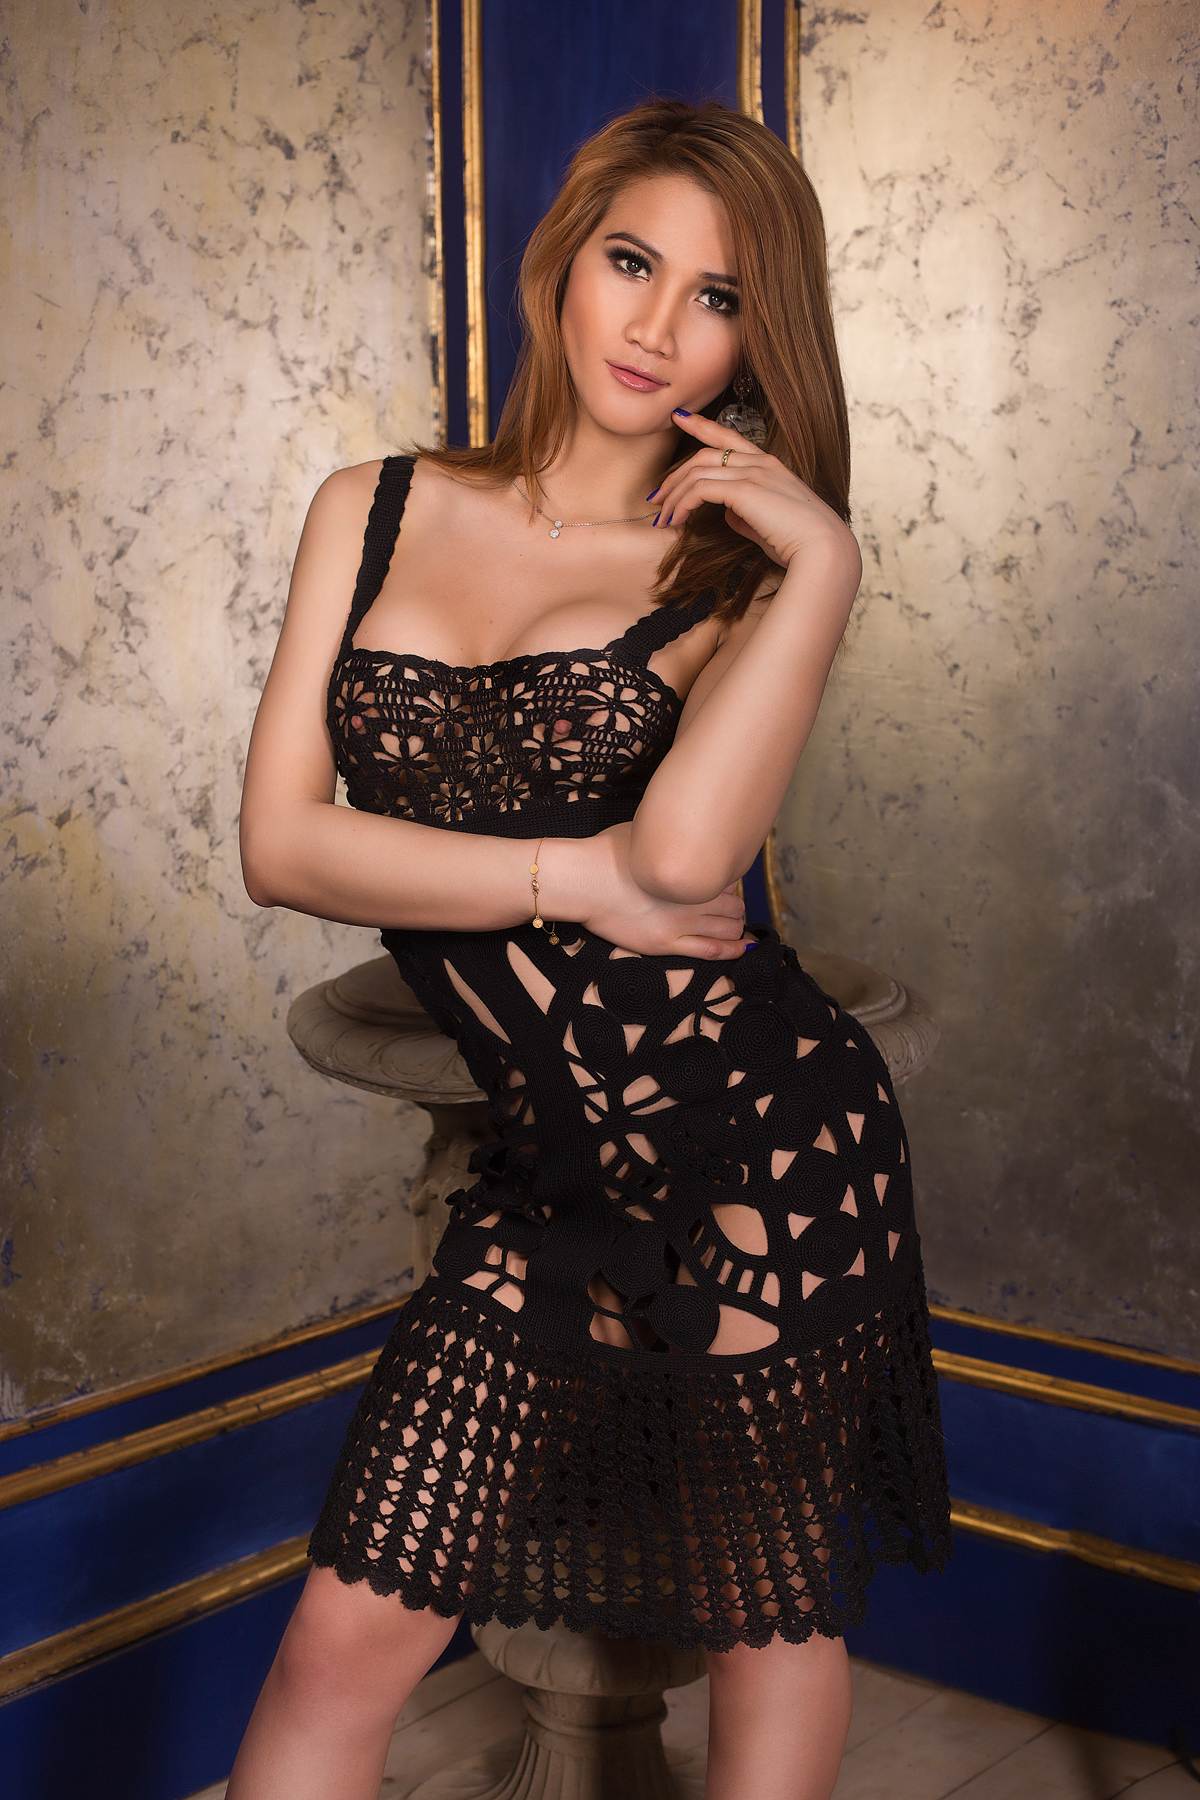 lady escorts uk